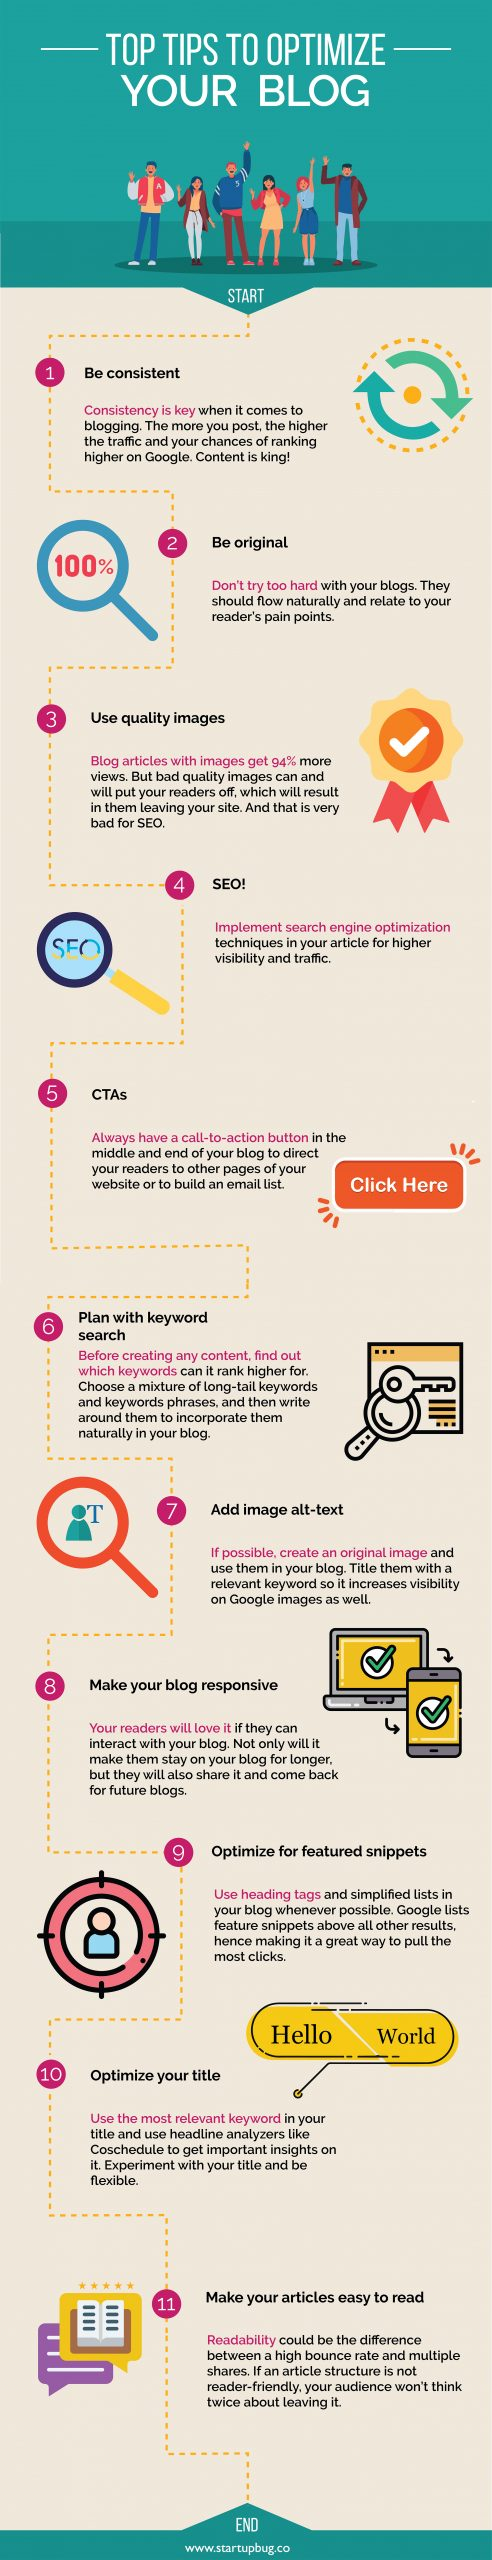 Top 11 Tips to optimize your startup blog